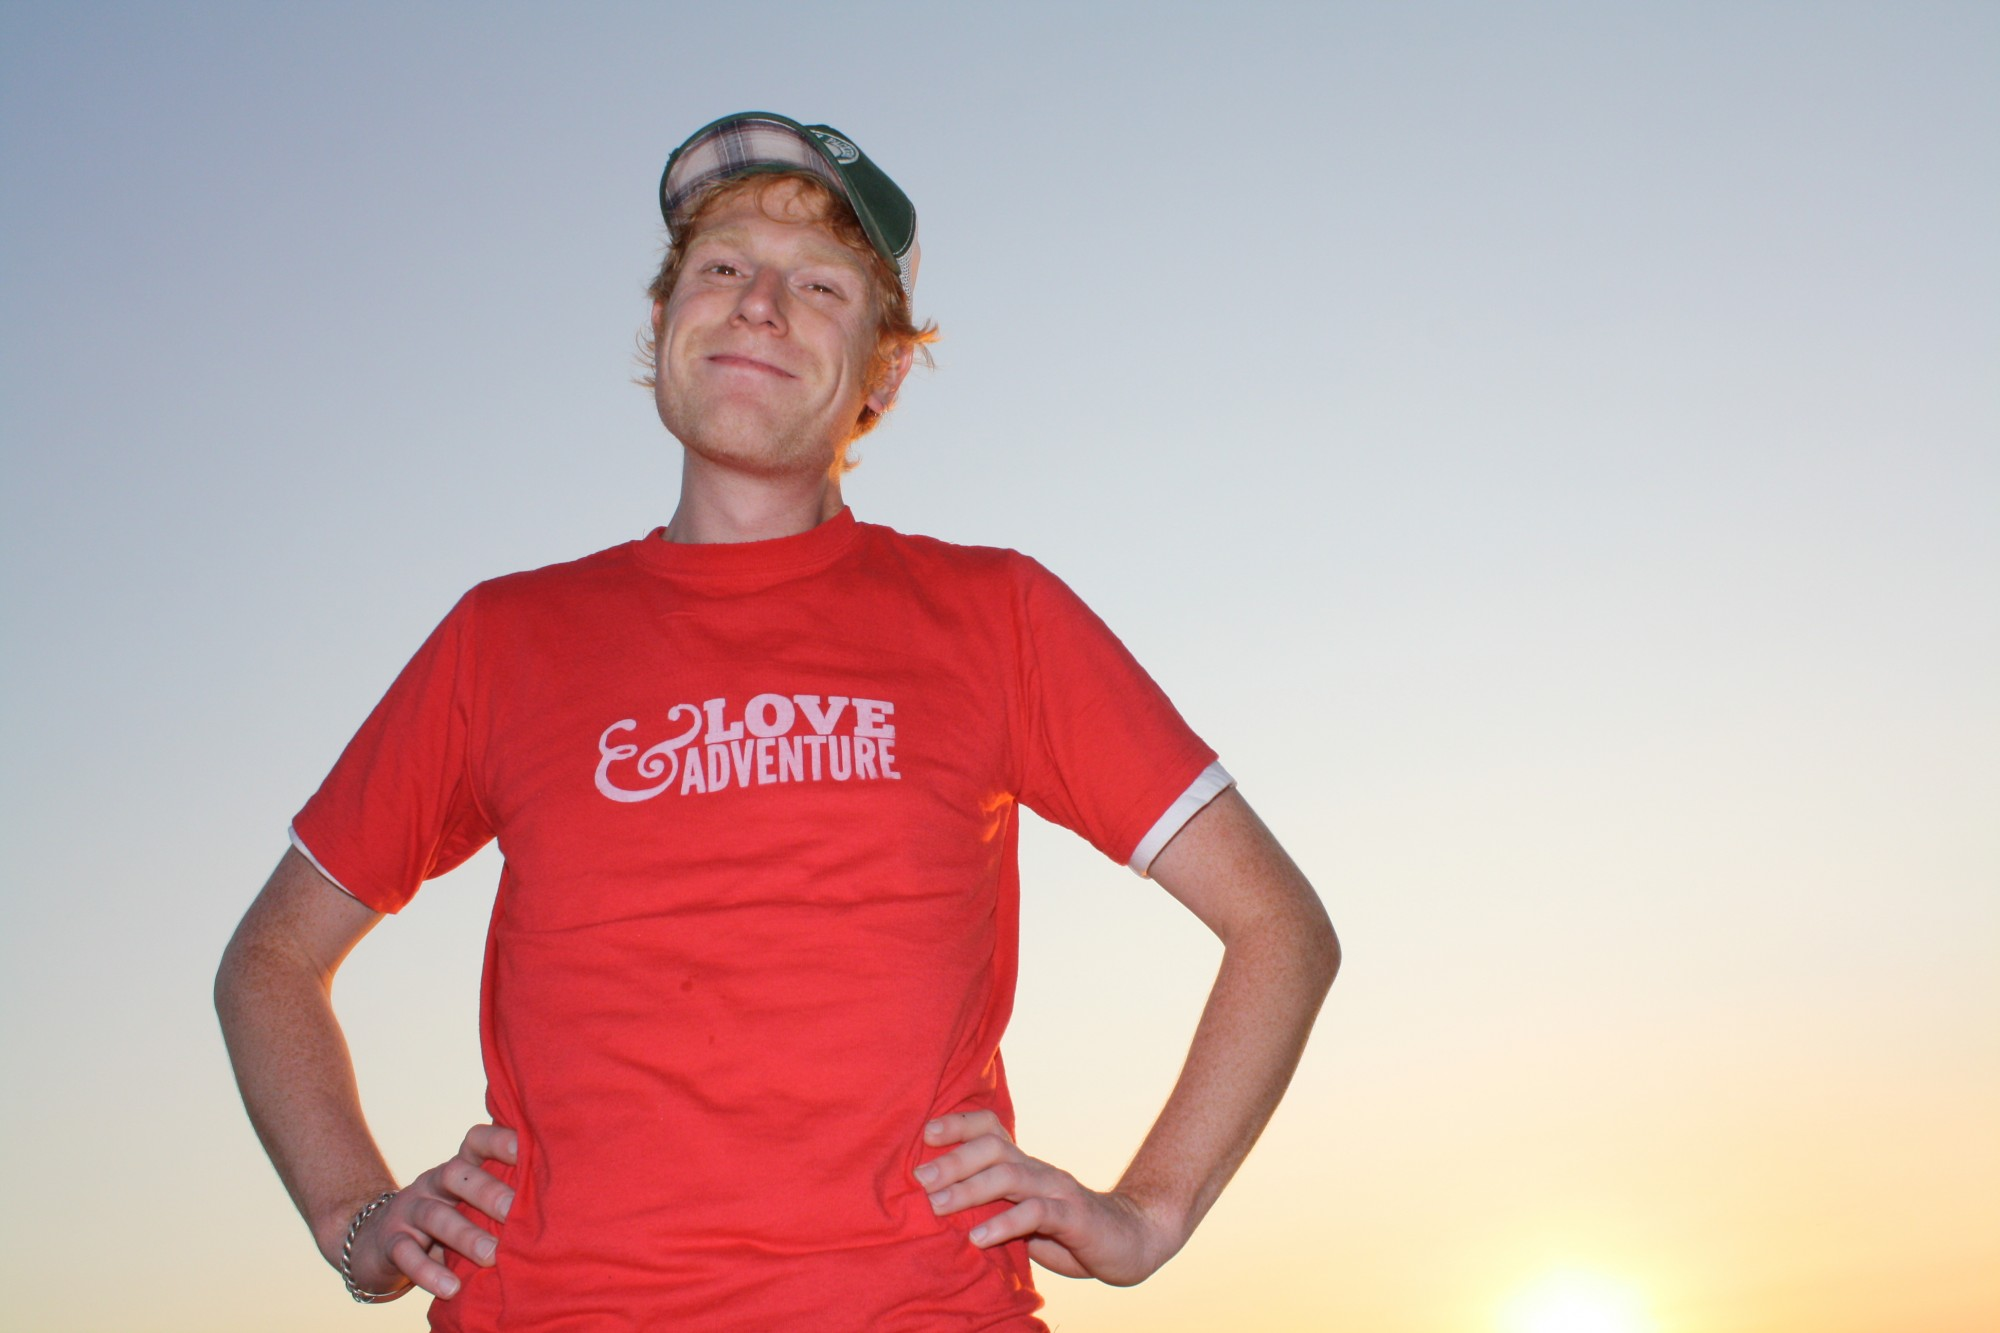 Ryan Bender of Love & Adventure standing in front of a sunset on a lake